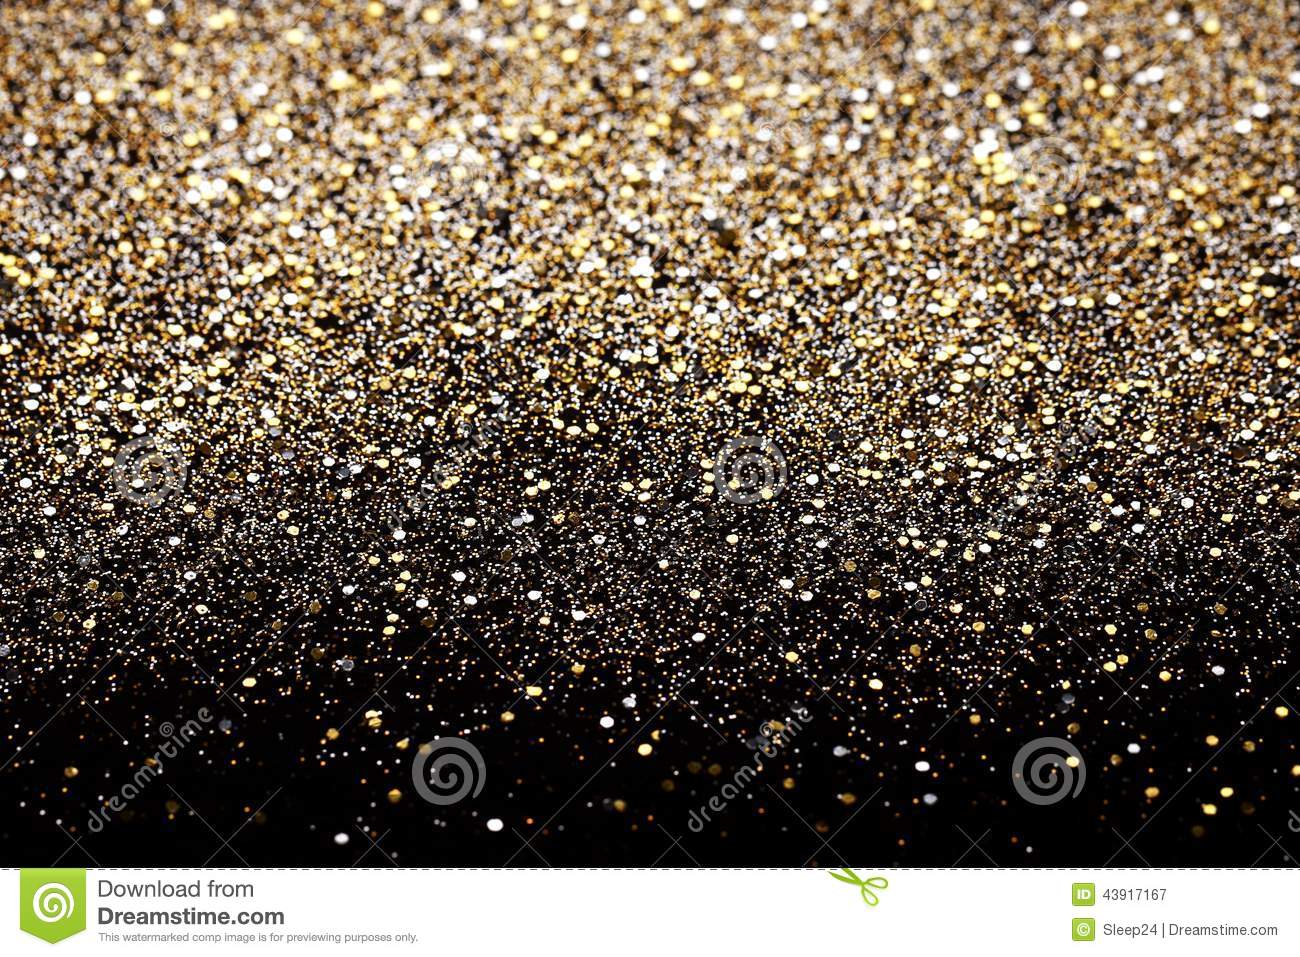 Free Download Black Gold Glitter Wallpapers The Art Mad Wallpapers 1300x957 For Your Desktop Mobile Tablet Explore 50 Black Sparkle Wallpaper Pink Glitter Wallpaper For Walls Wallpaper With Sparkle